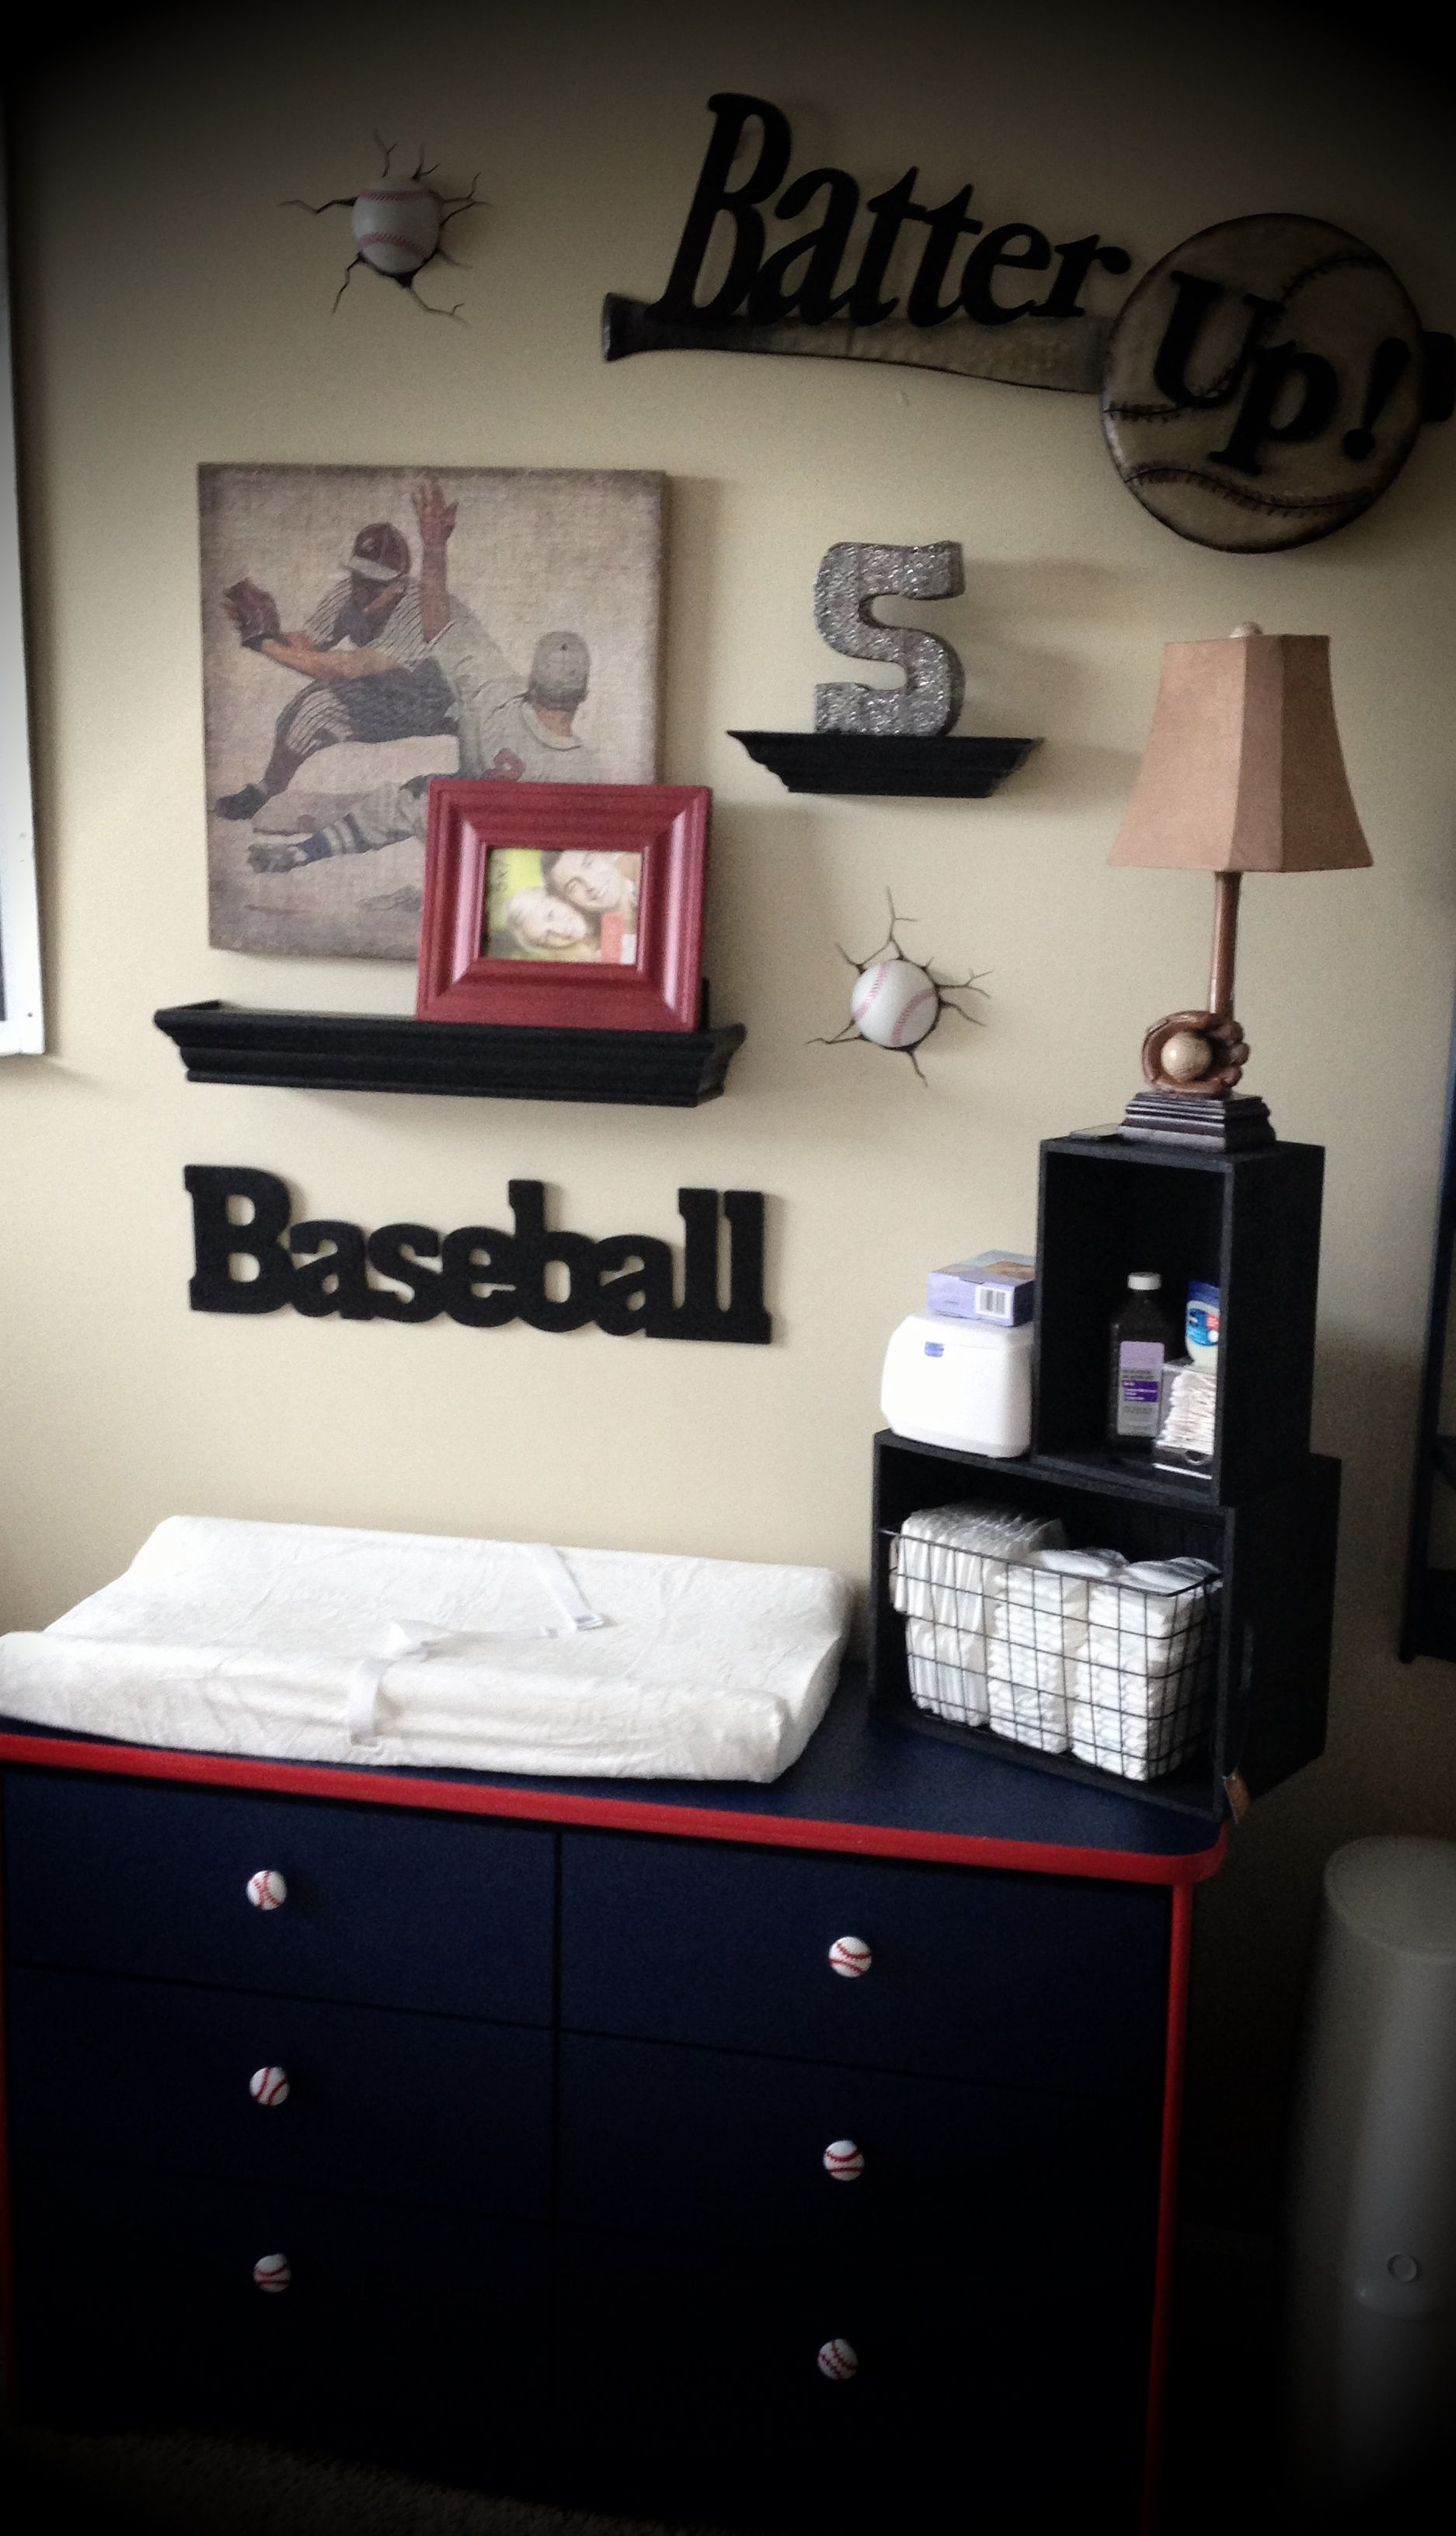 Space Themed Lamp Vintage Baseball Decor Love The Diapers In The Basket